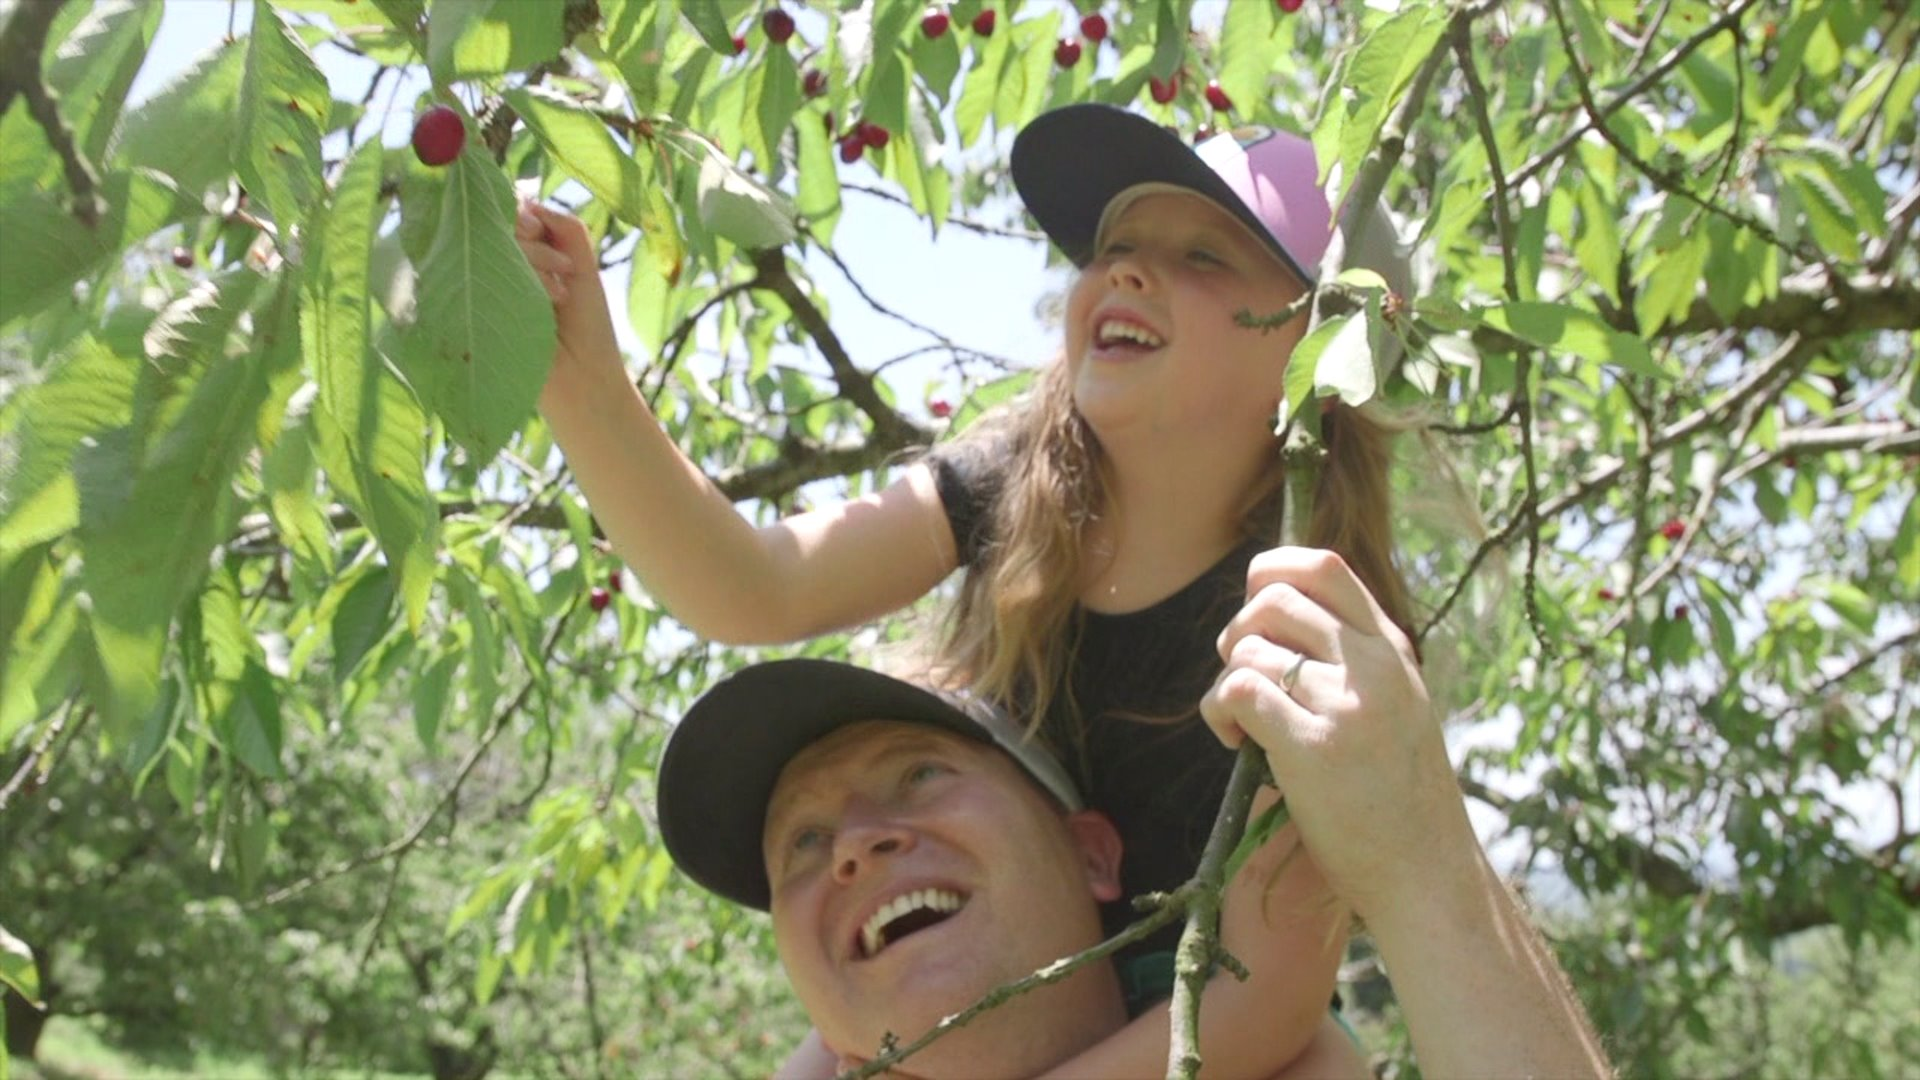 Virginia man keeps up tradition of offering cherry picking for families